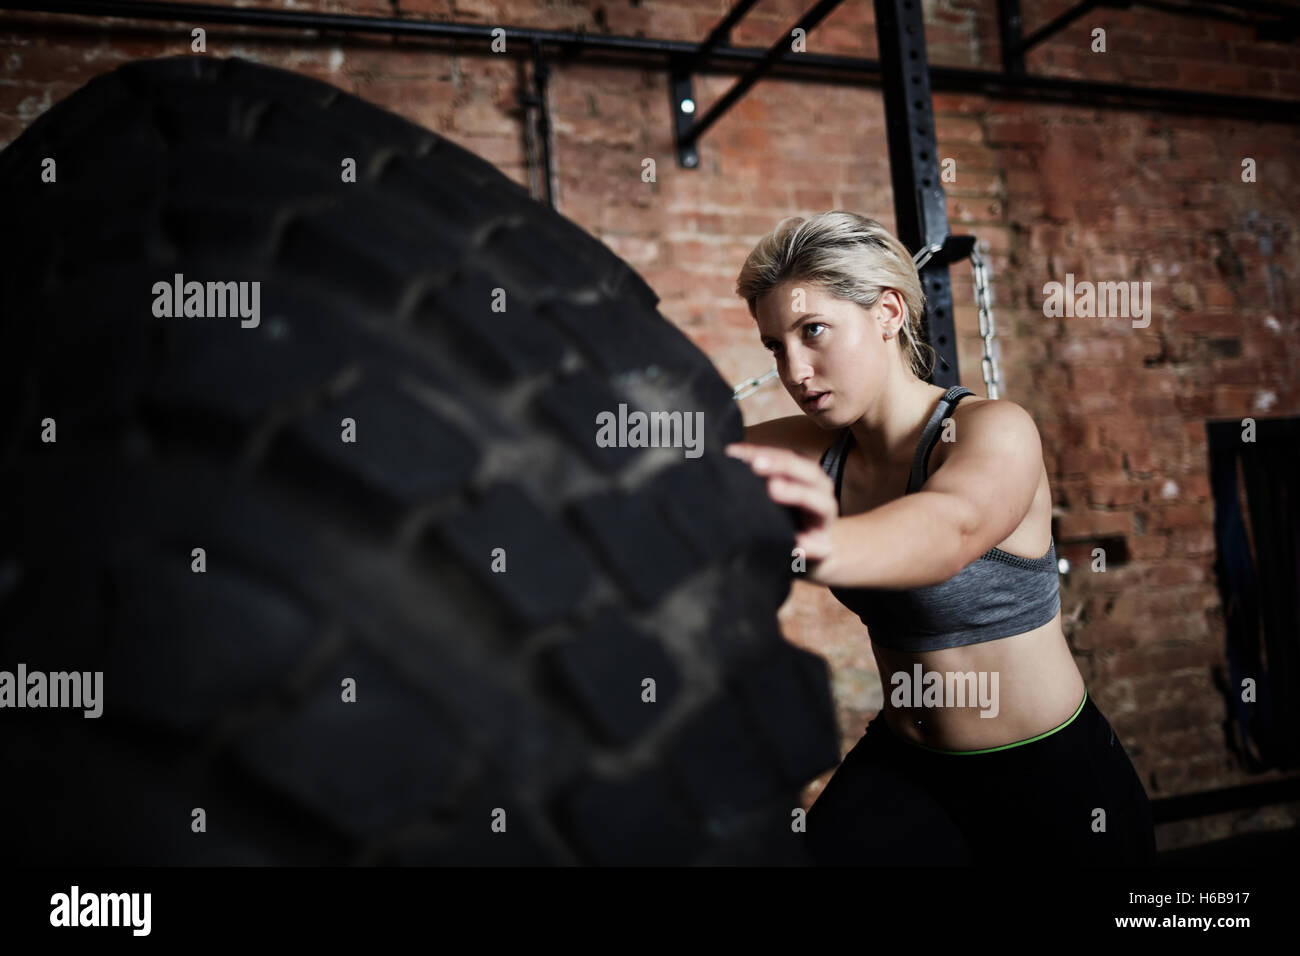 Exercise with tire - Stock Image